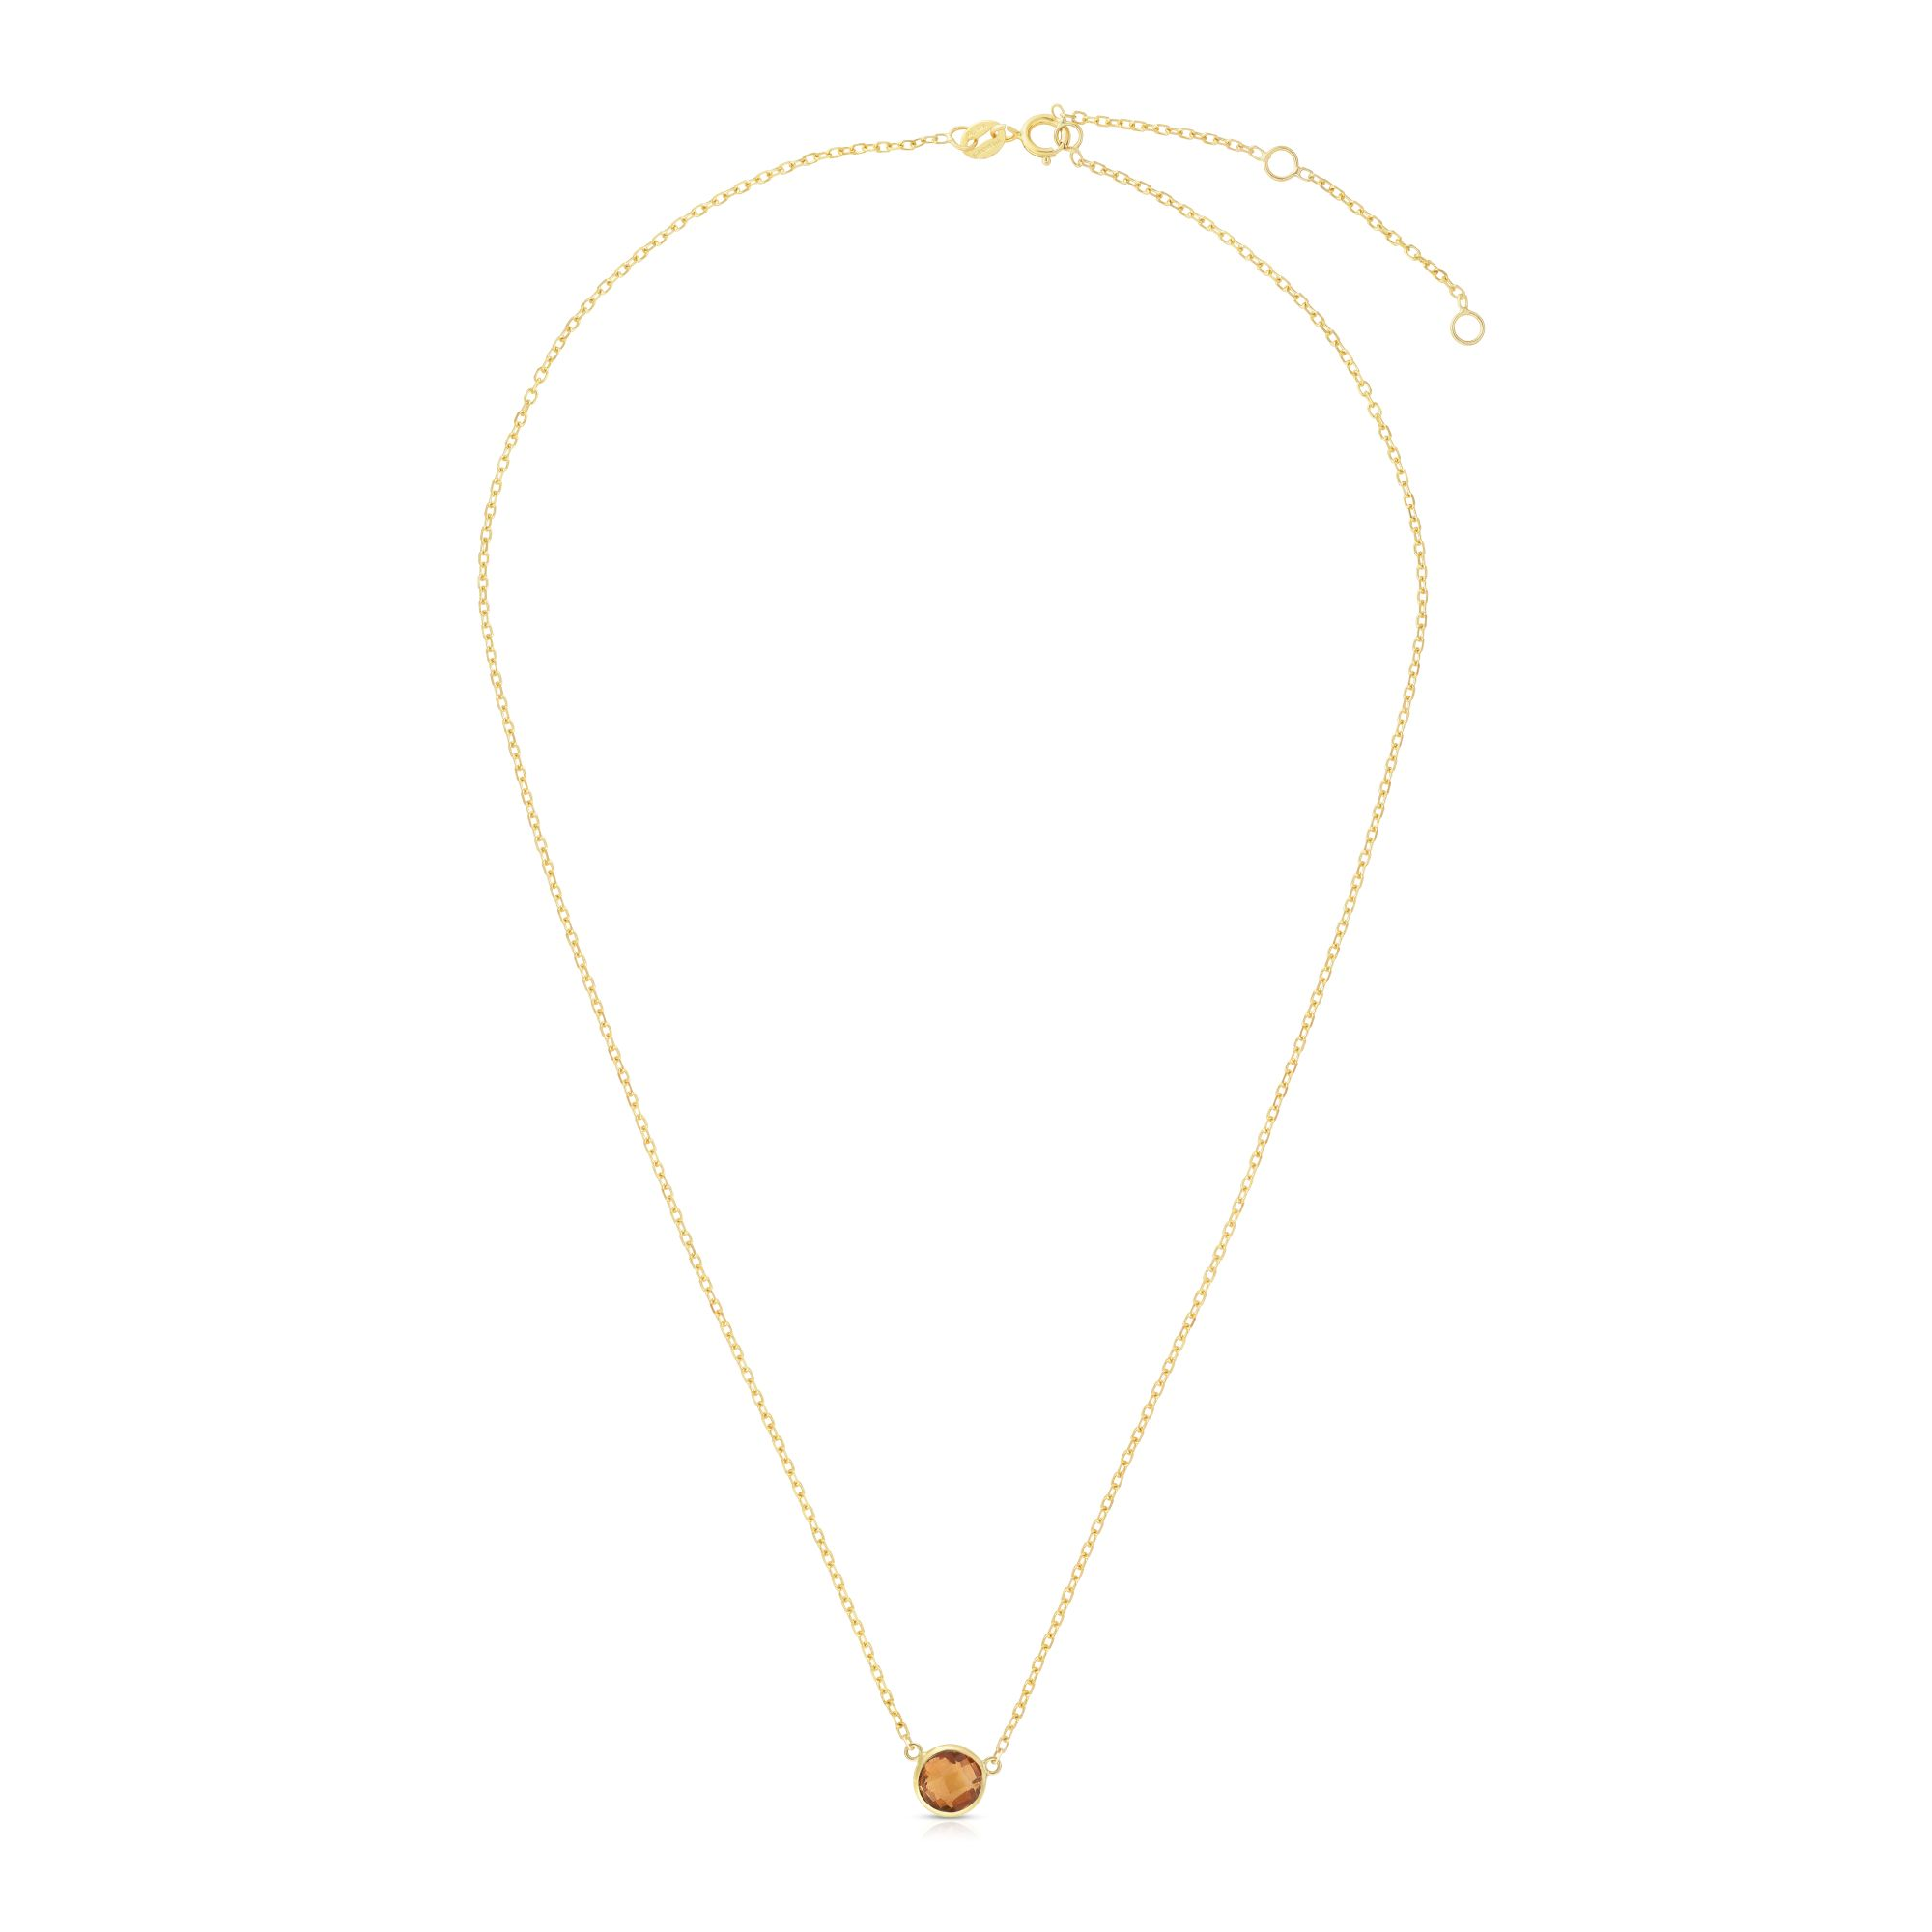 14kt Gold 17 inches Yellow Finish Extendable Colored Stone Necklace with Spring Ring Clasp with 0.9000ct 6mm Round Yellow Citrine